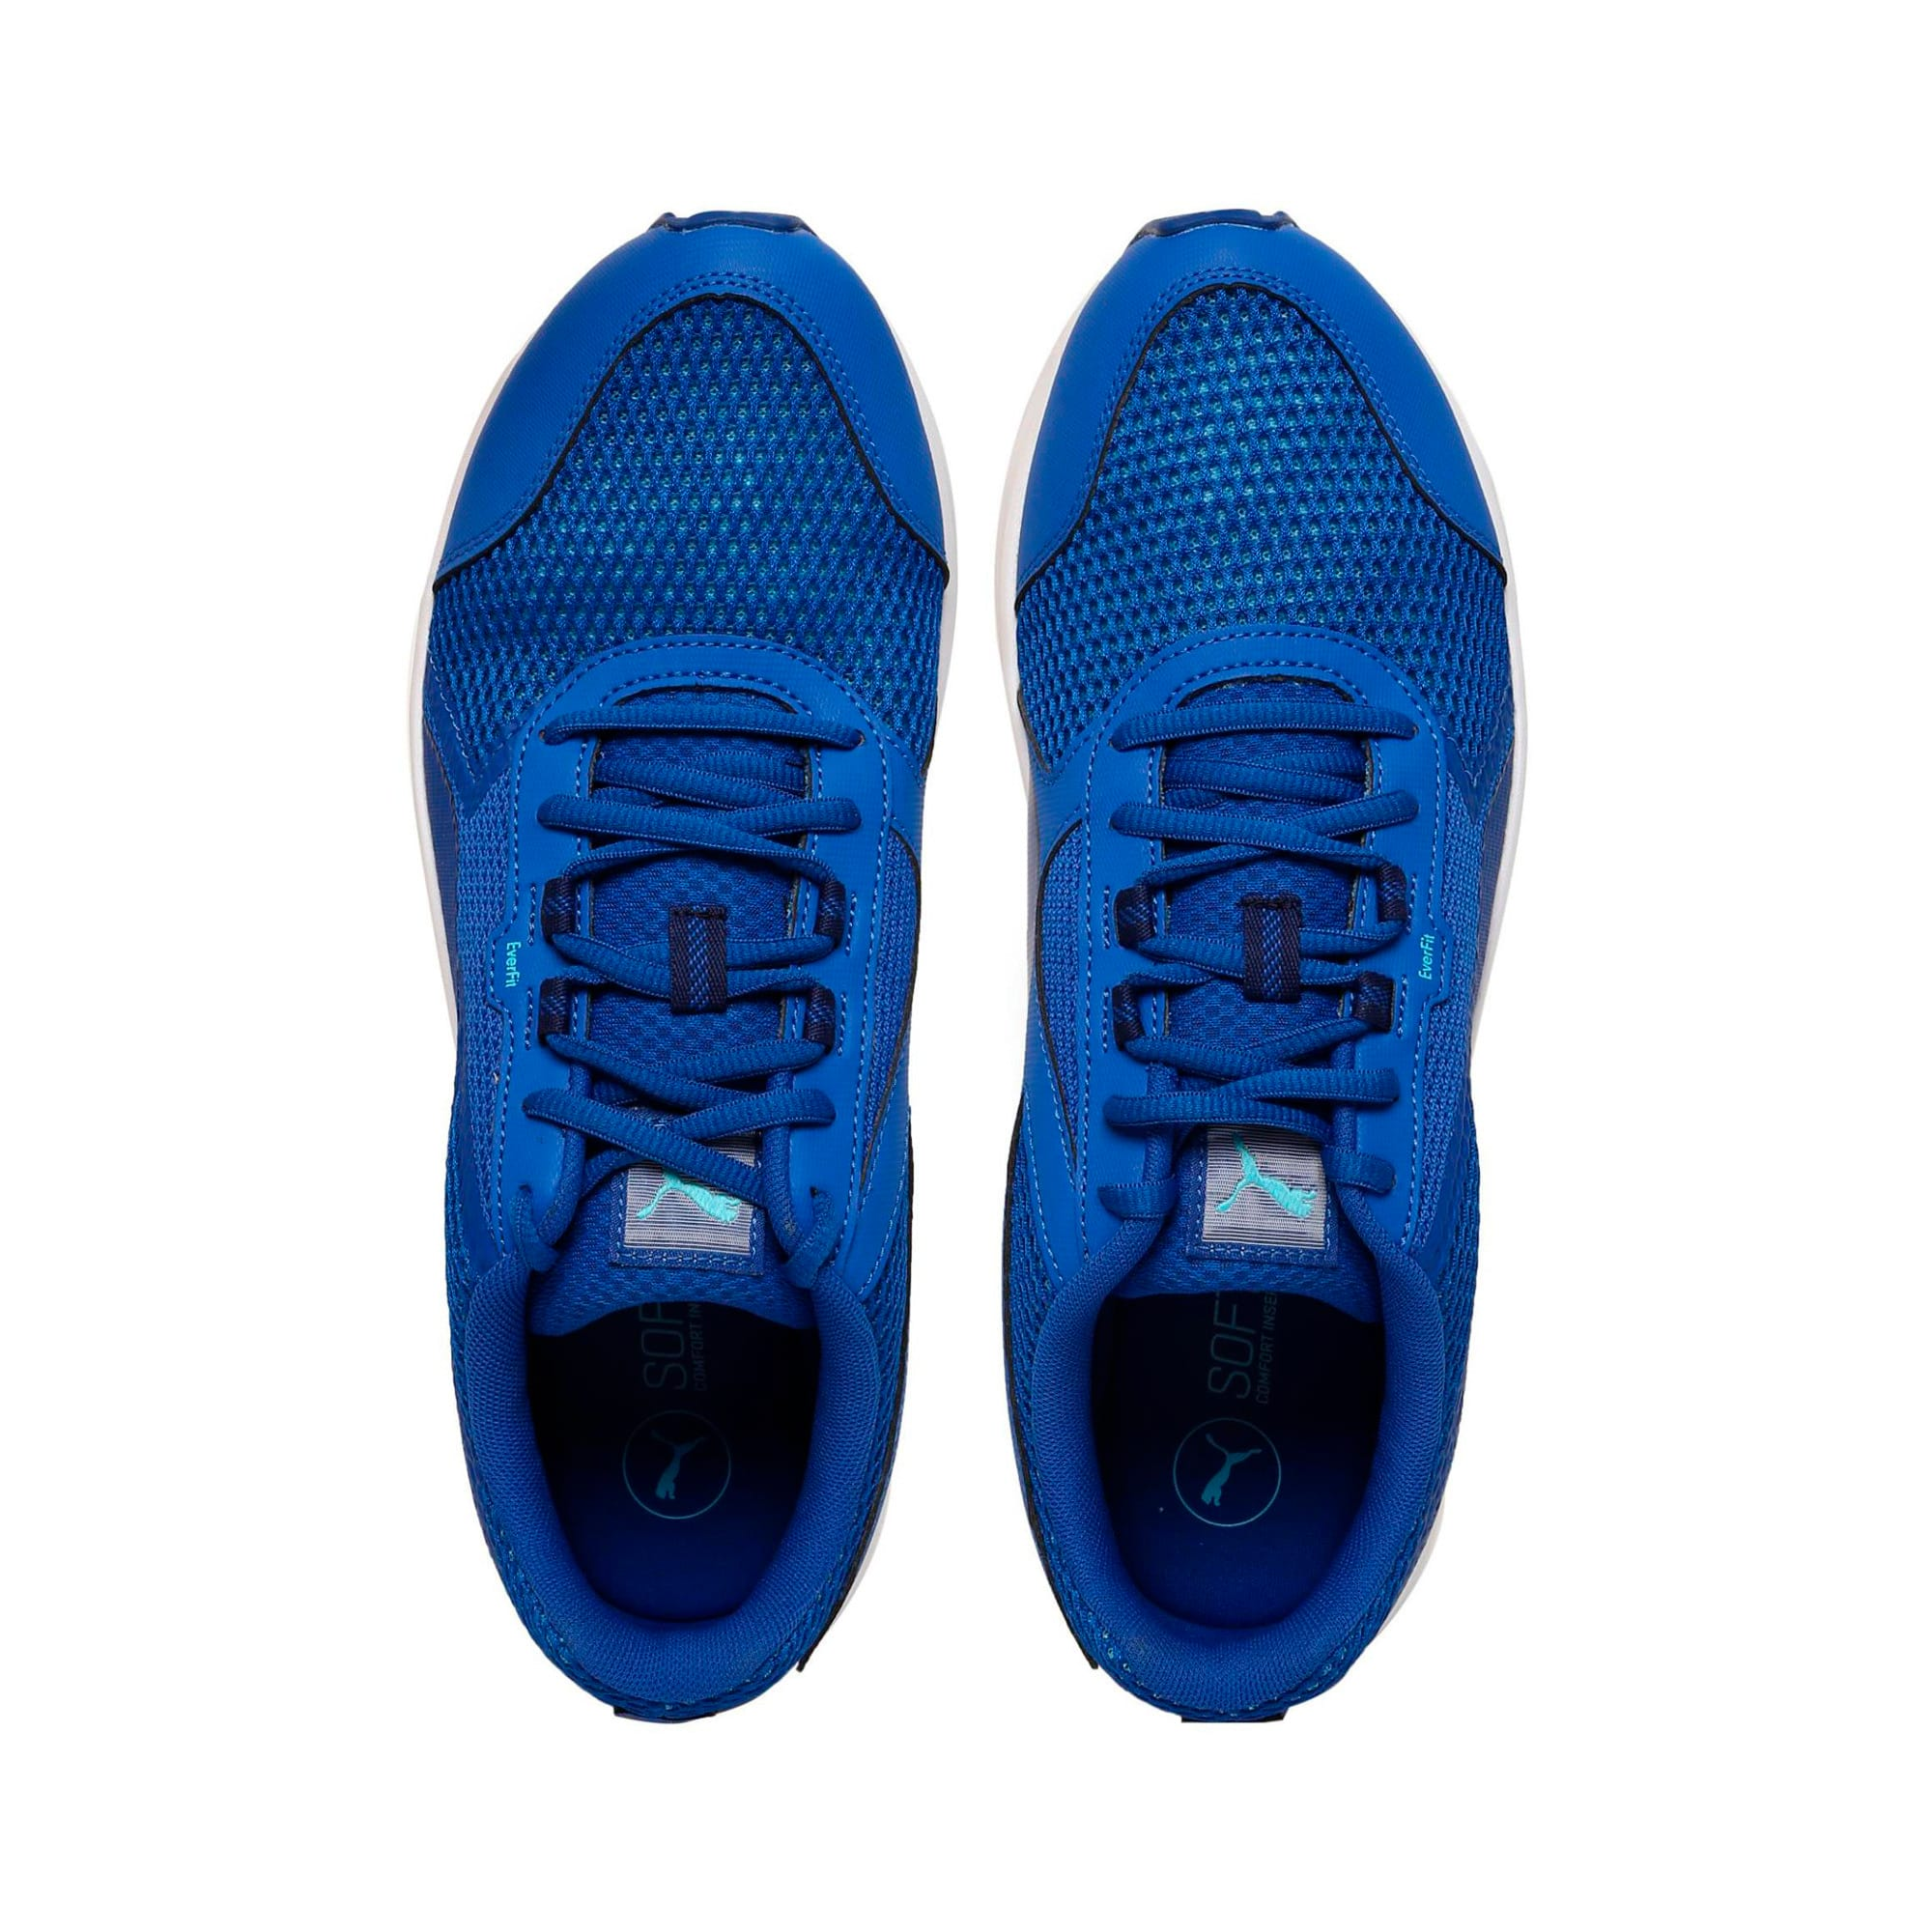 Thumbnail 6 of Essential Runner Men's Running Shoes, Lapis Blue-Blue Depths-Turq, medium-IND